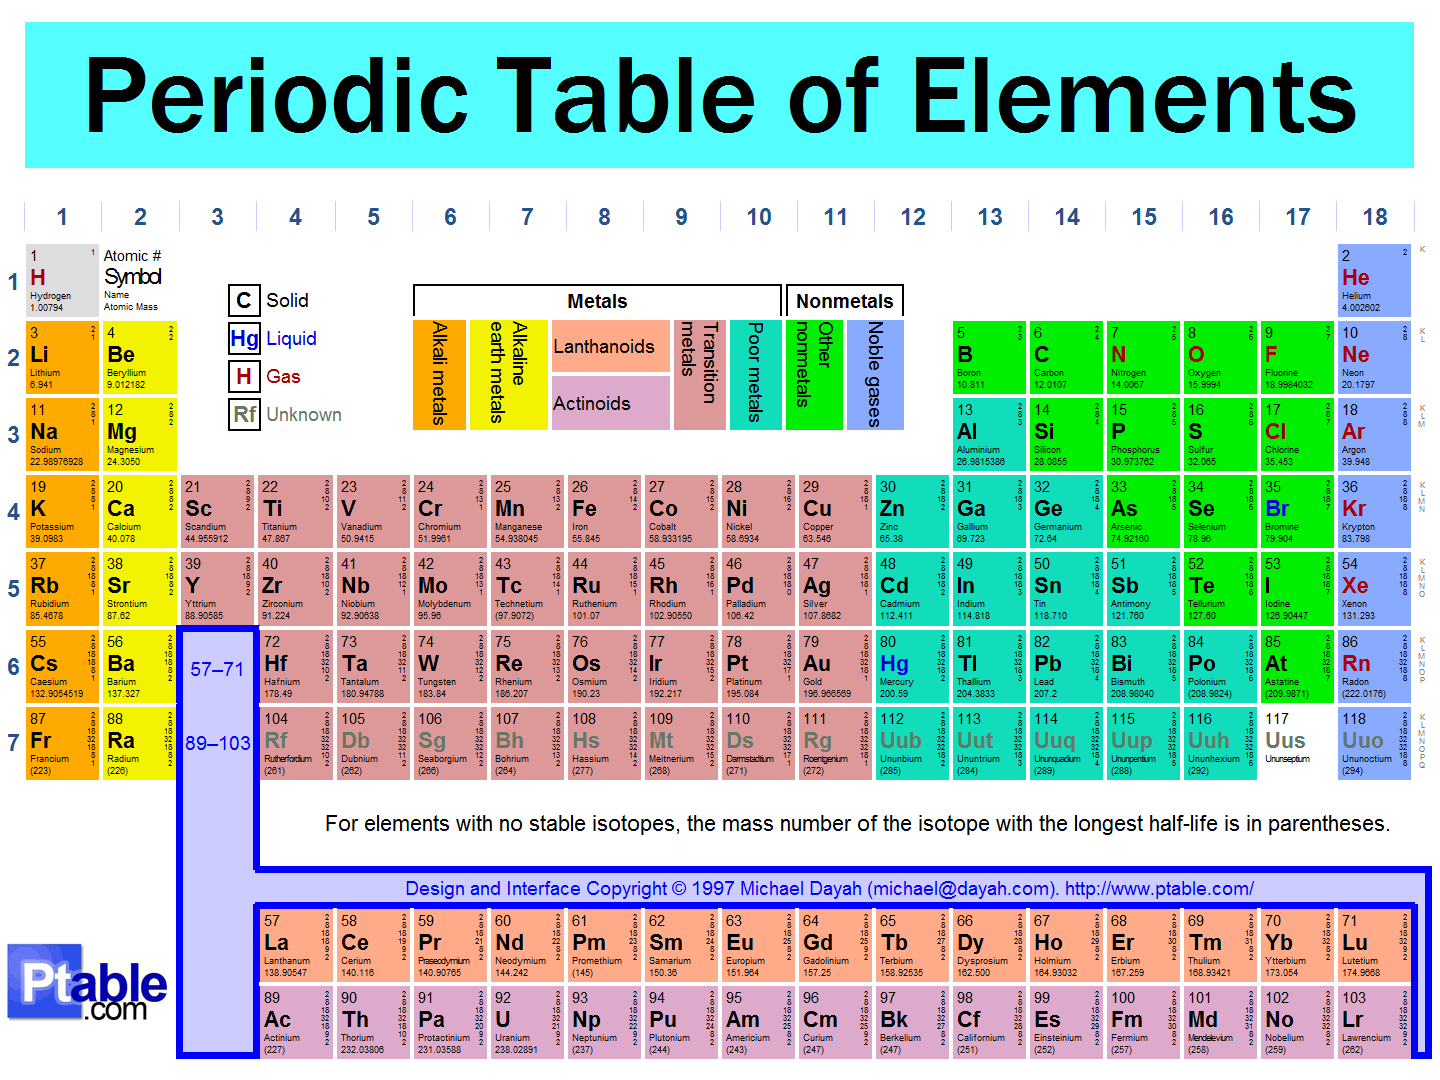 Often patterns can be seen when a graphic organizer is used. The periodic table is a graphic organizer that shows many patterns in the properties and behavior or elements.